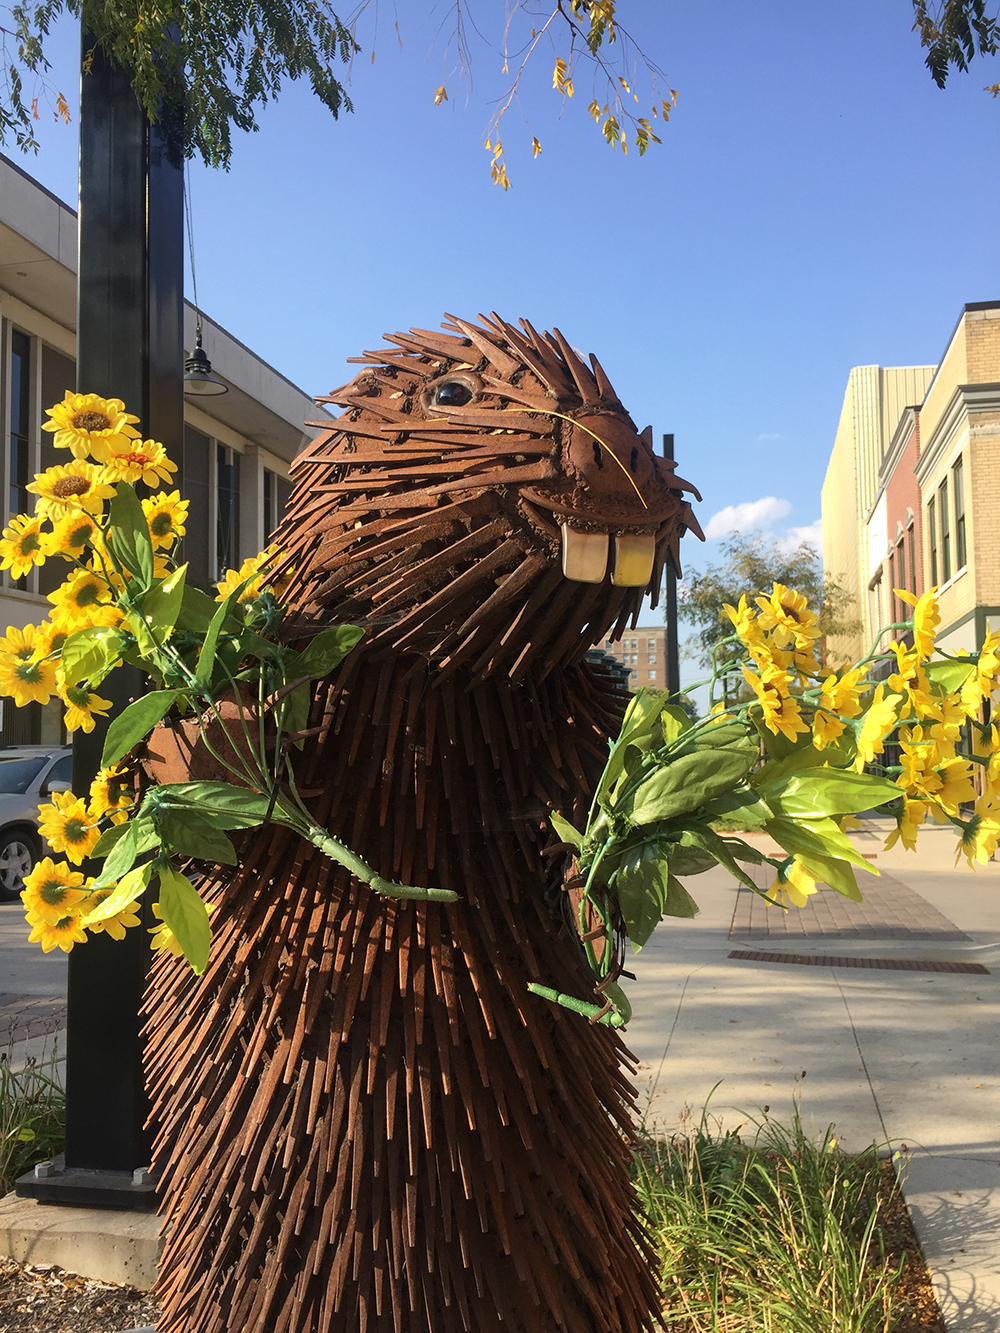 Sculpture of beaver holding bunches of yellow flowers on the River City Sculptures on Parade in Mason City, Iowa